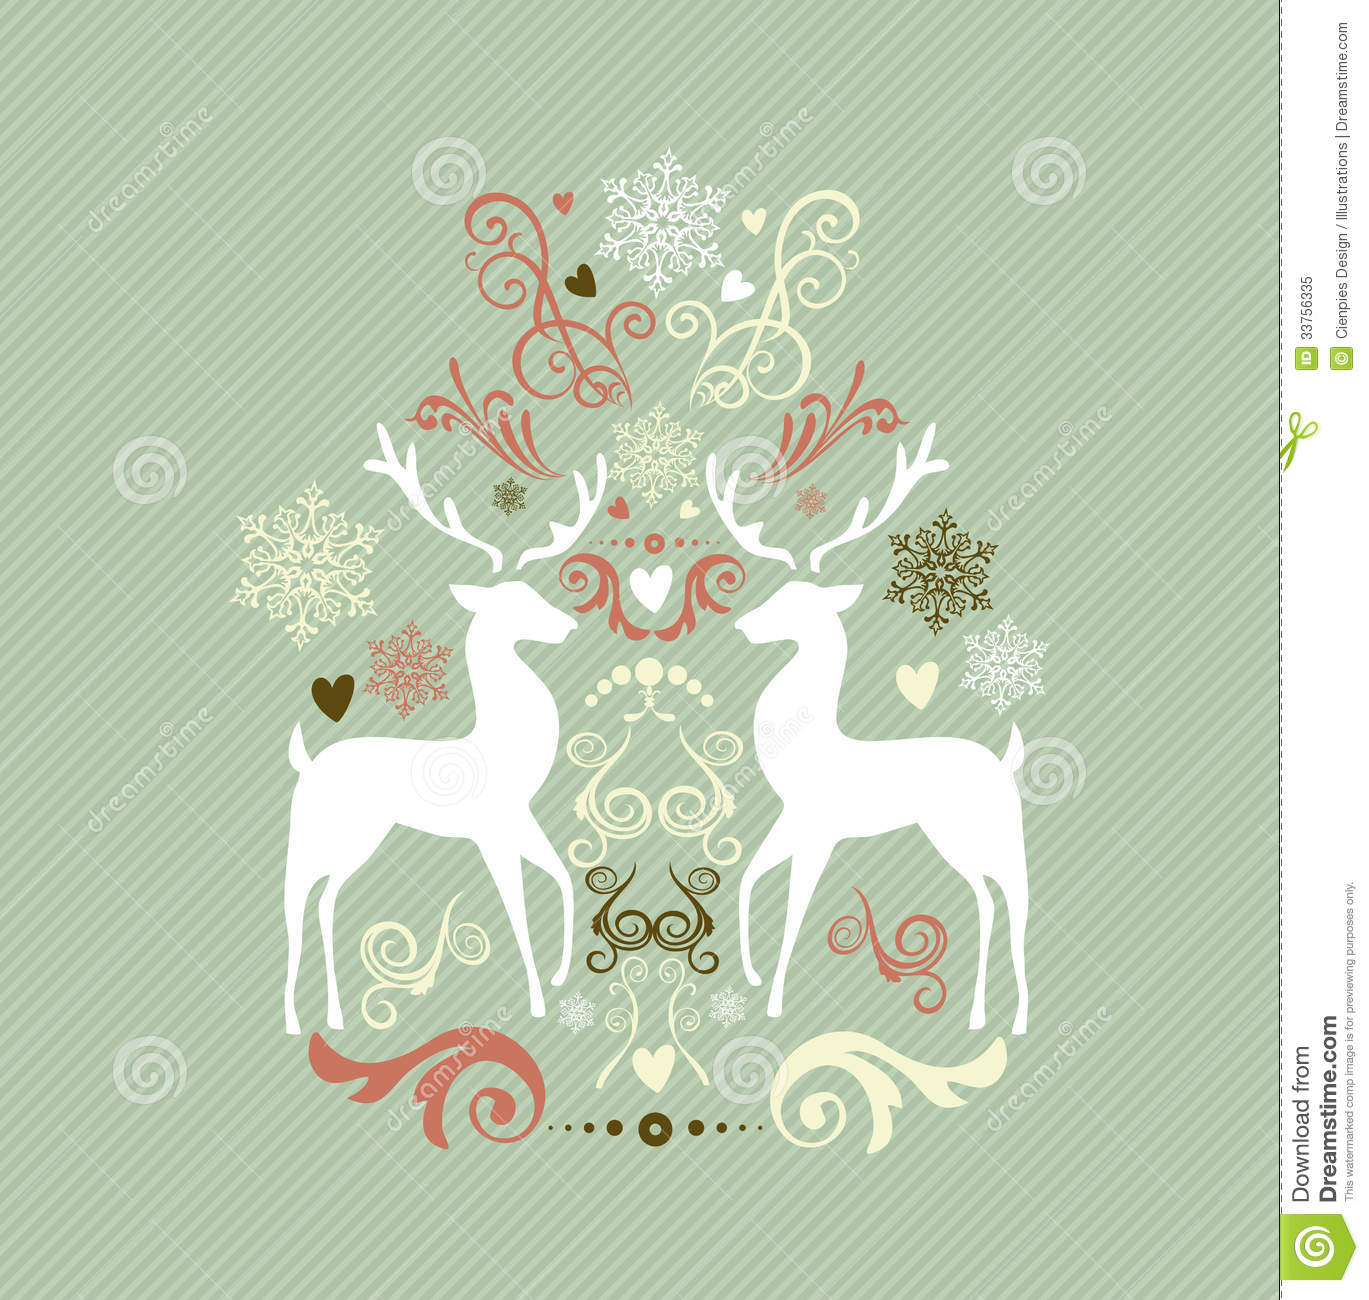 Retro merry christmas illustration with reindeers